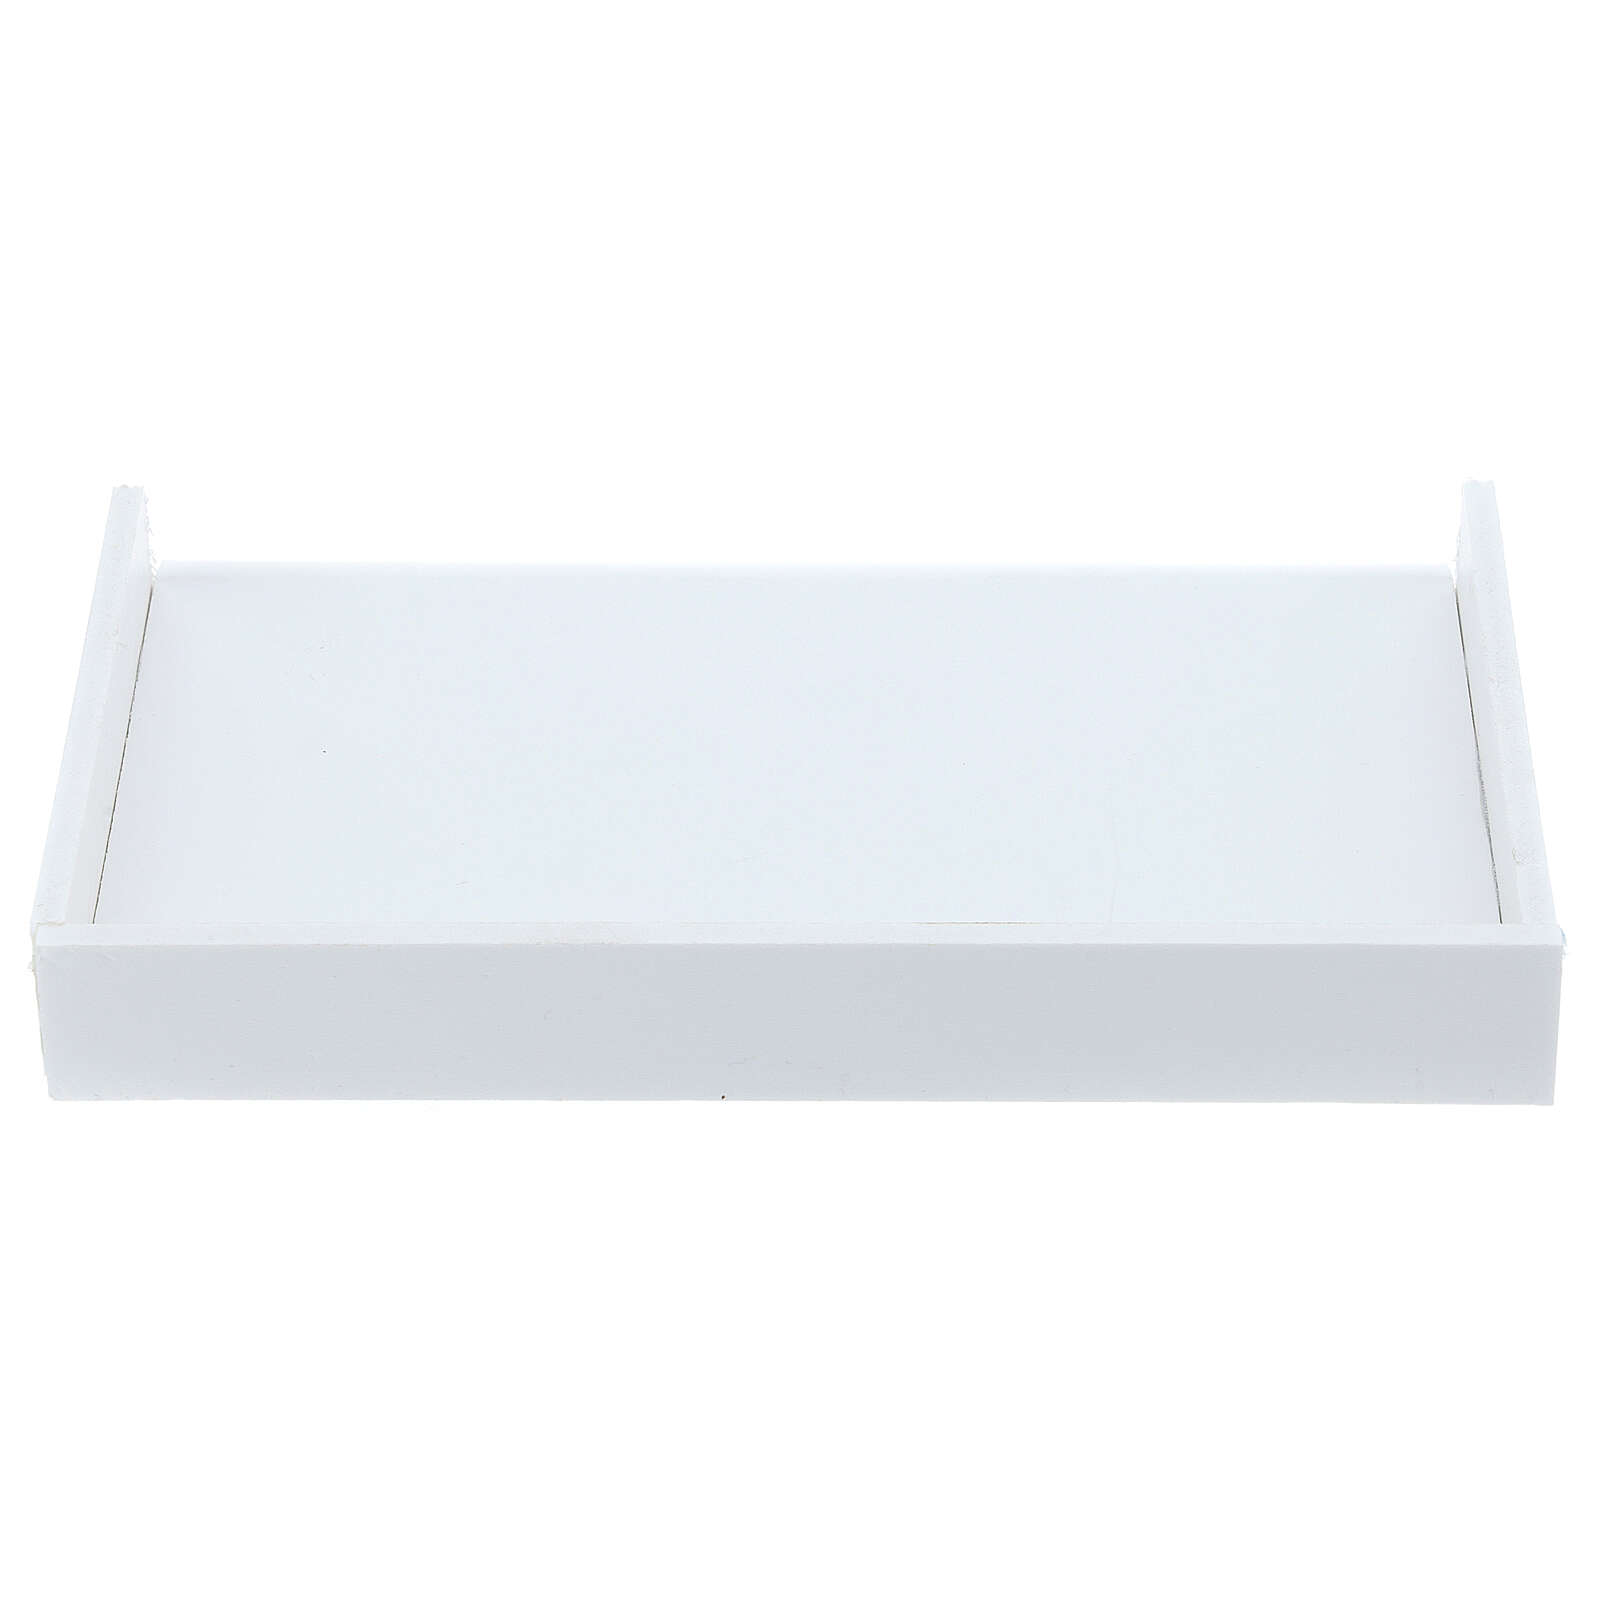 Shelf for medical glove box 14x17 cm, forex with screws for PF000003 3